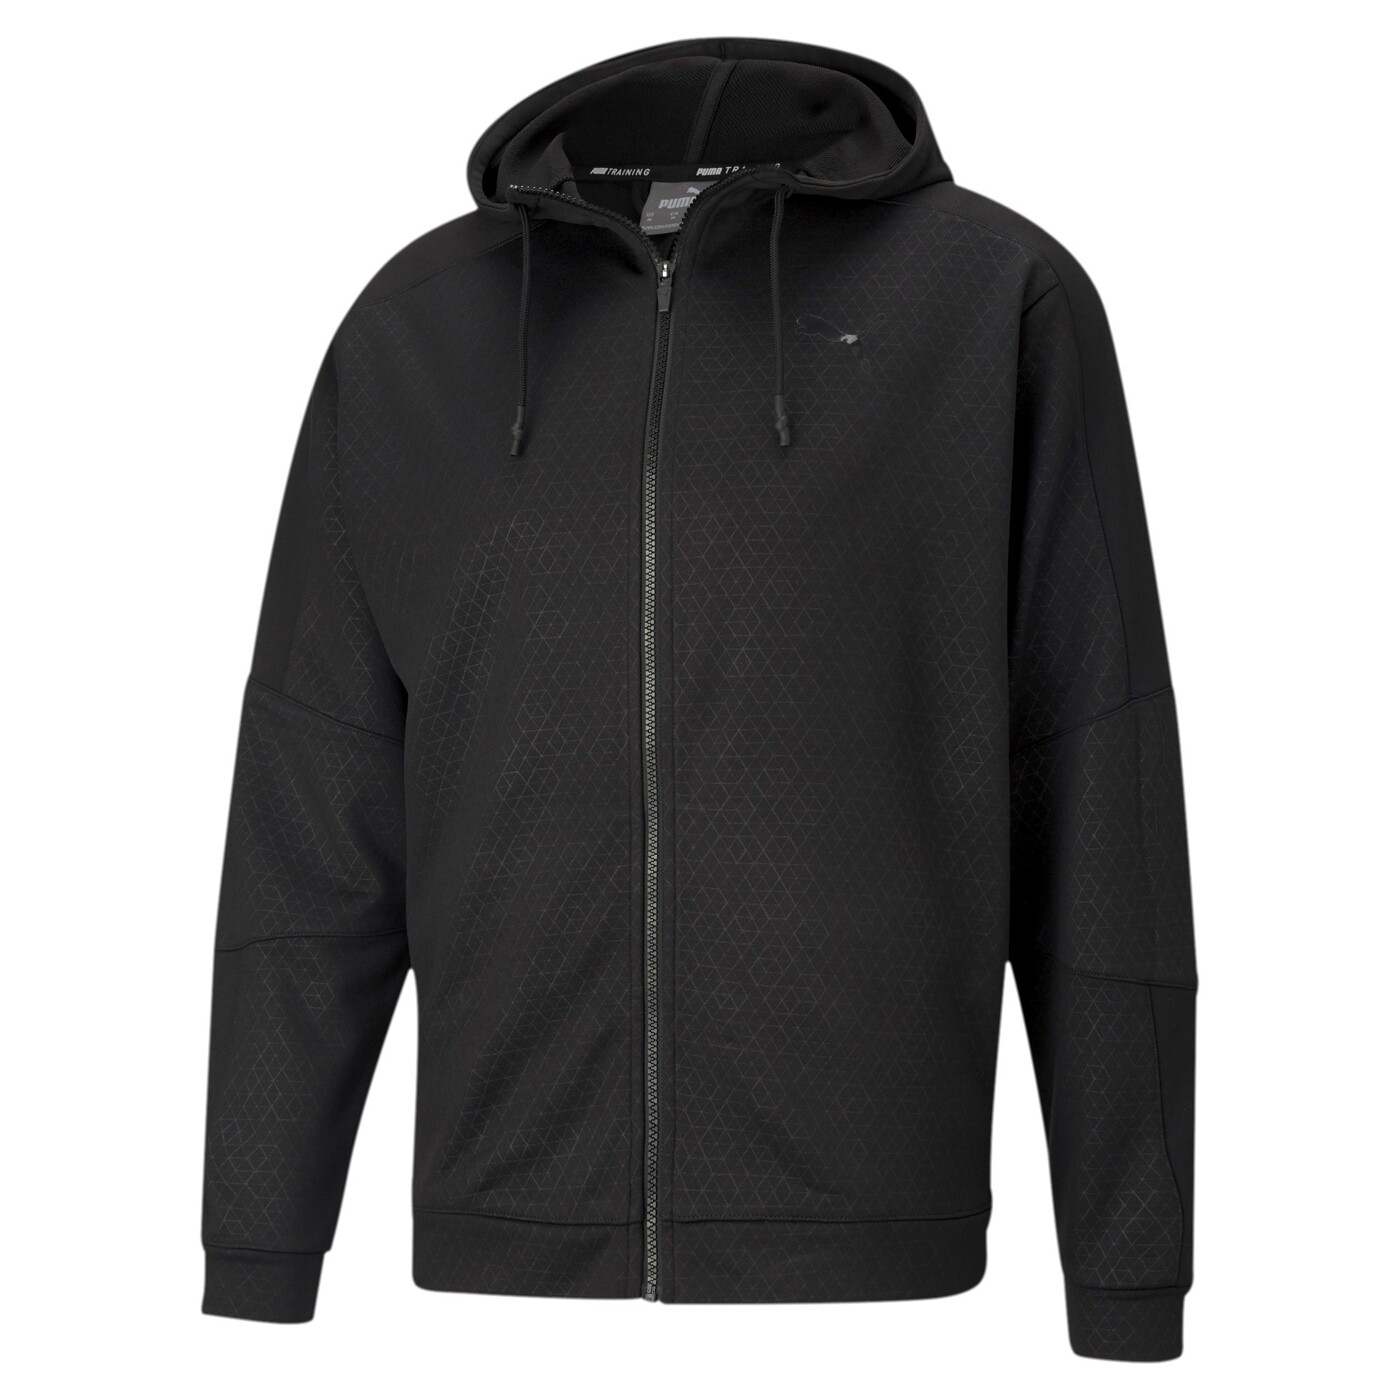 PUMA TRAIN ACTIVATE FZ JACKET - Herren